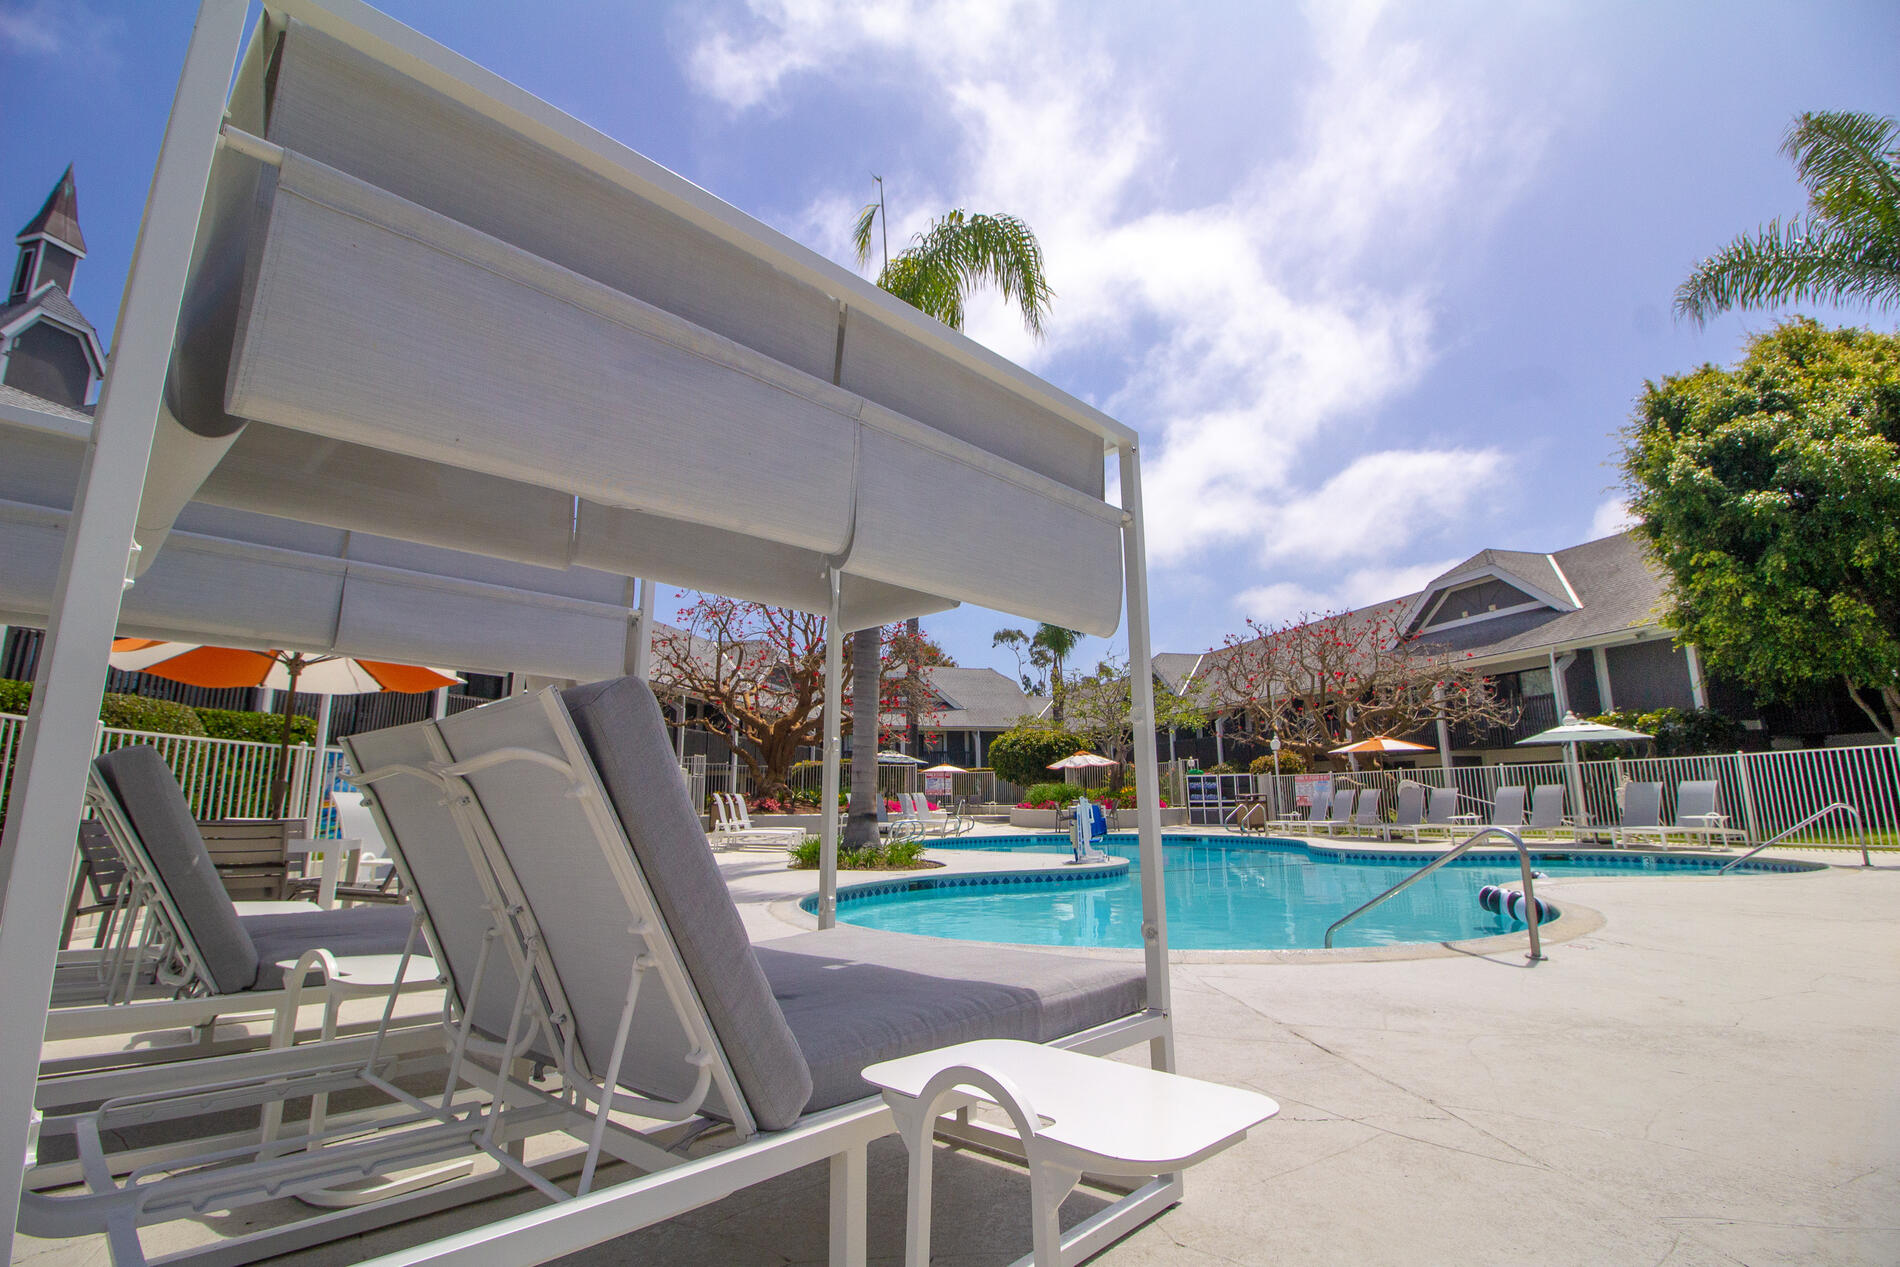 Carlsbad by the sea pool and lounge chairs